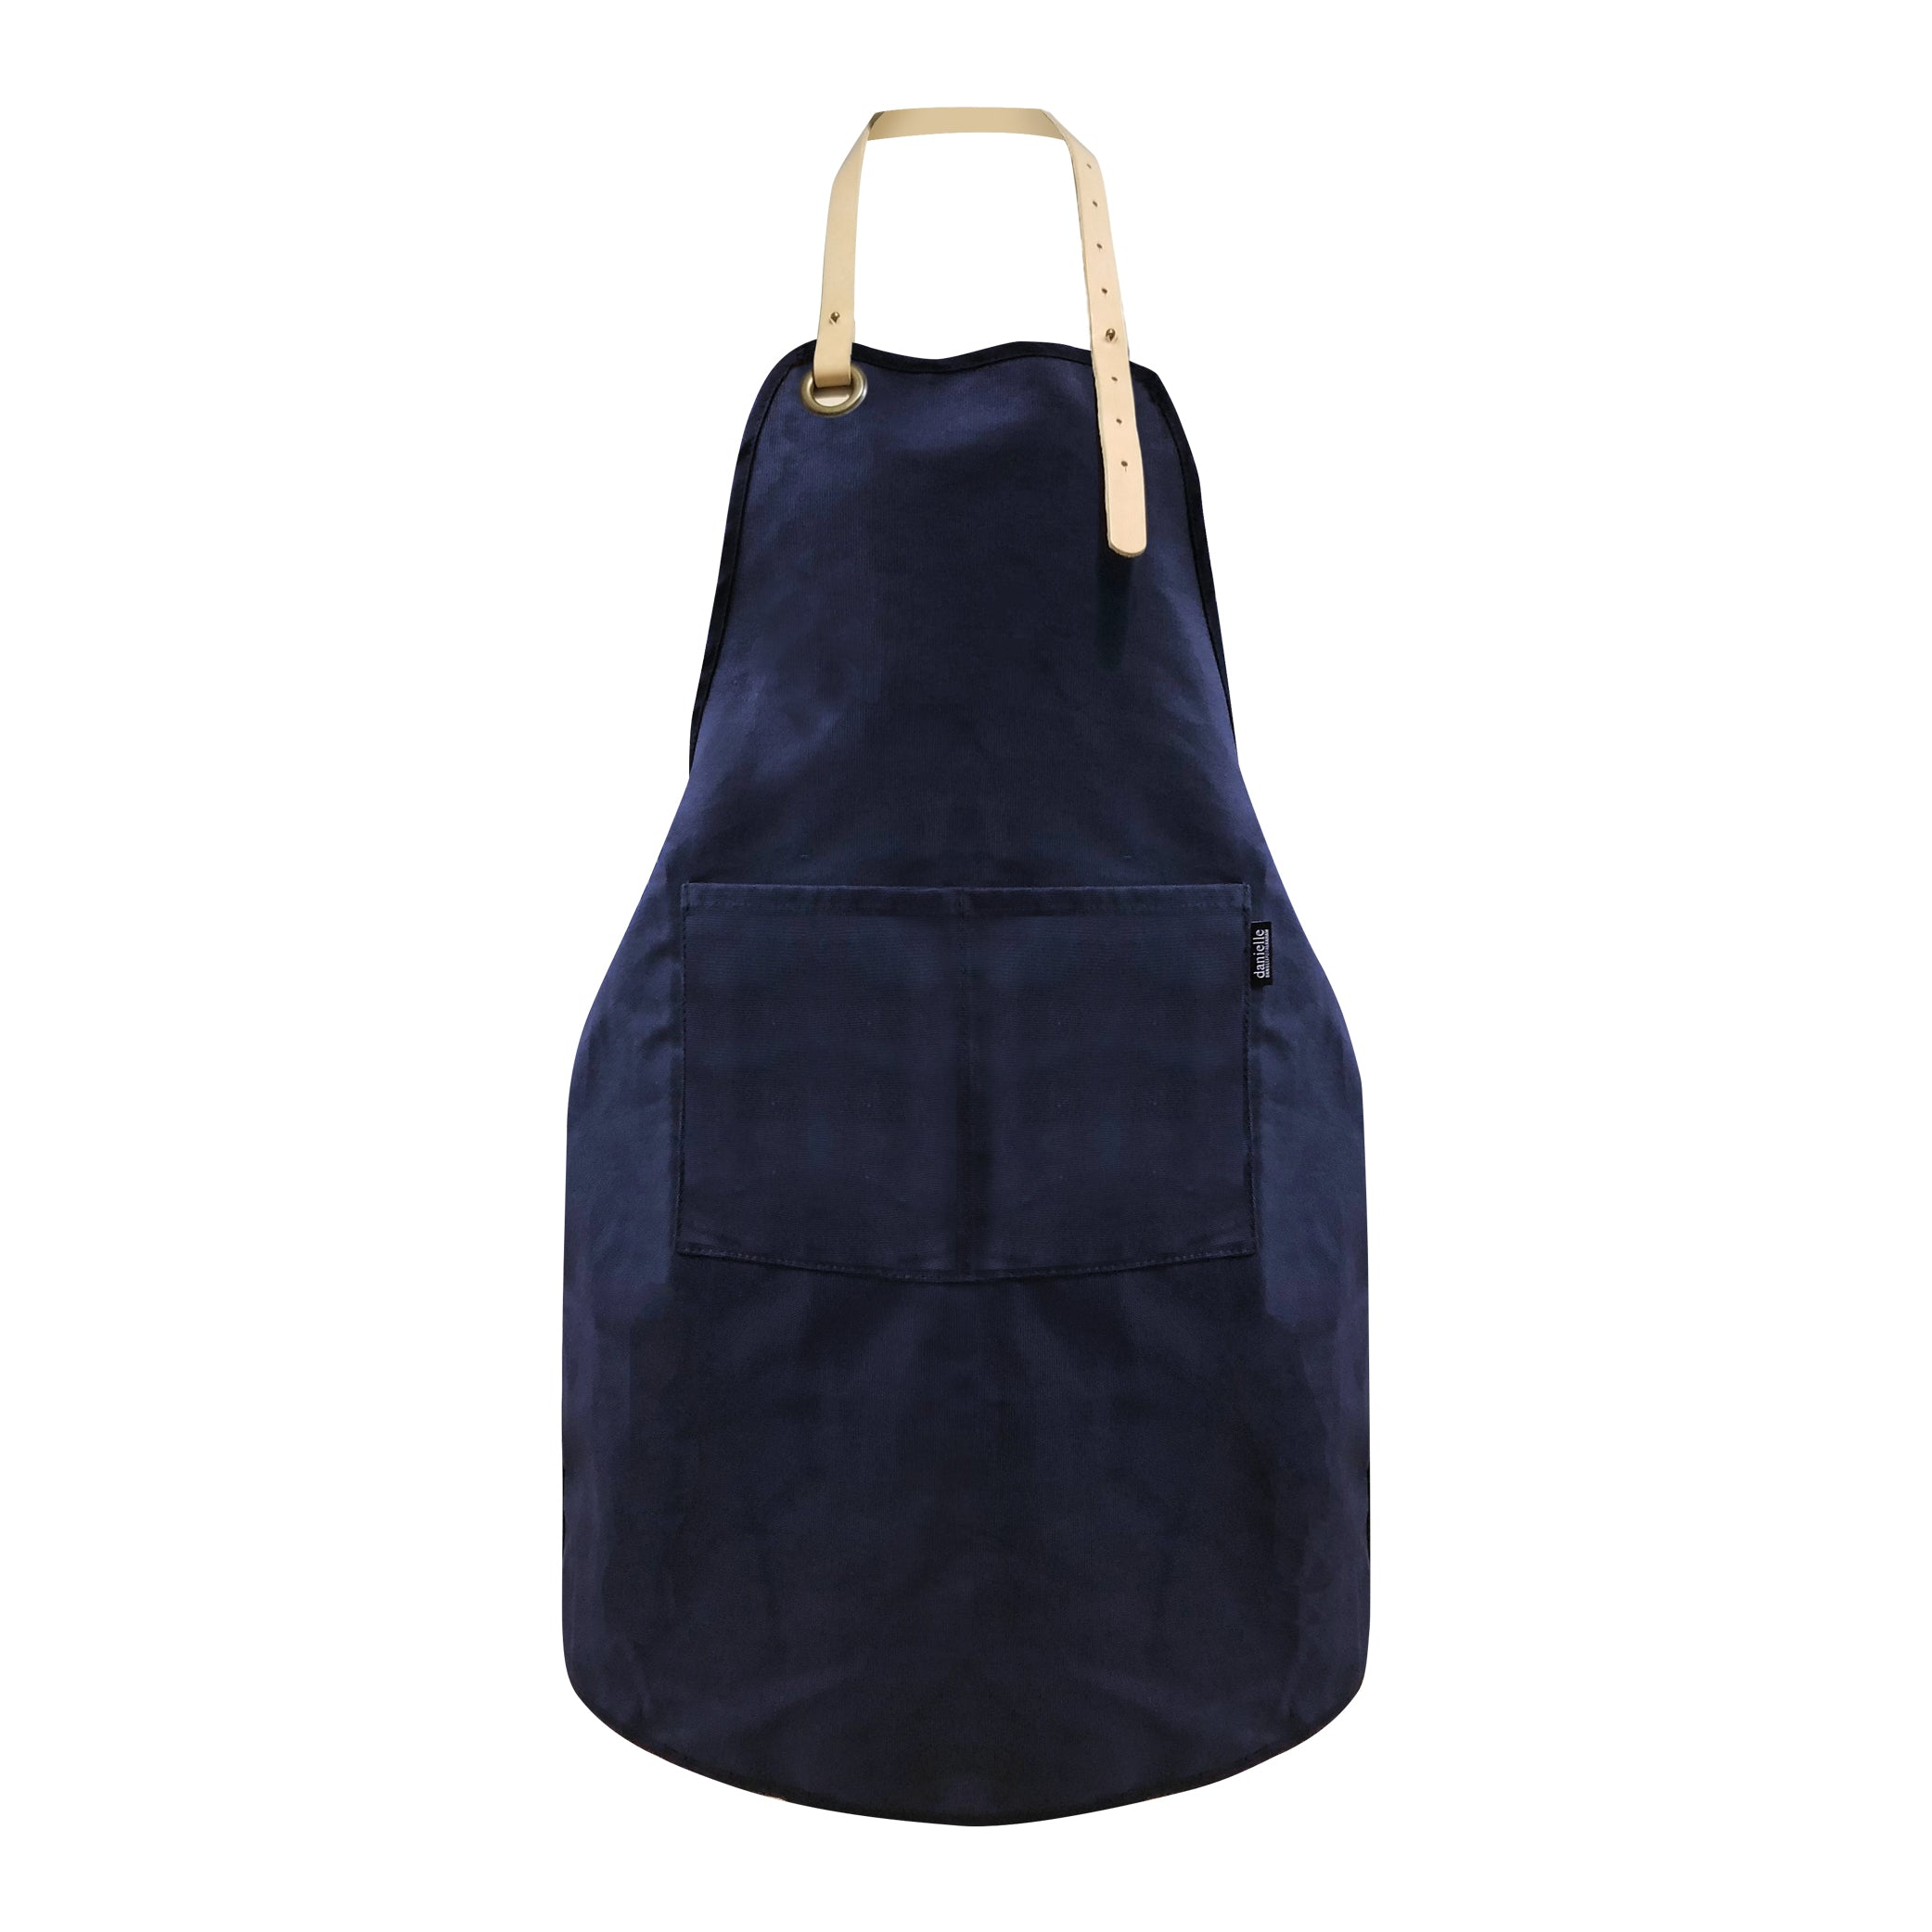 Elite Apron with 100% Genuine Leather Strap (Free Size, Detachable Strap)